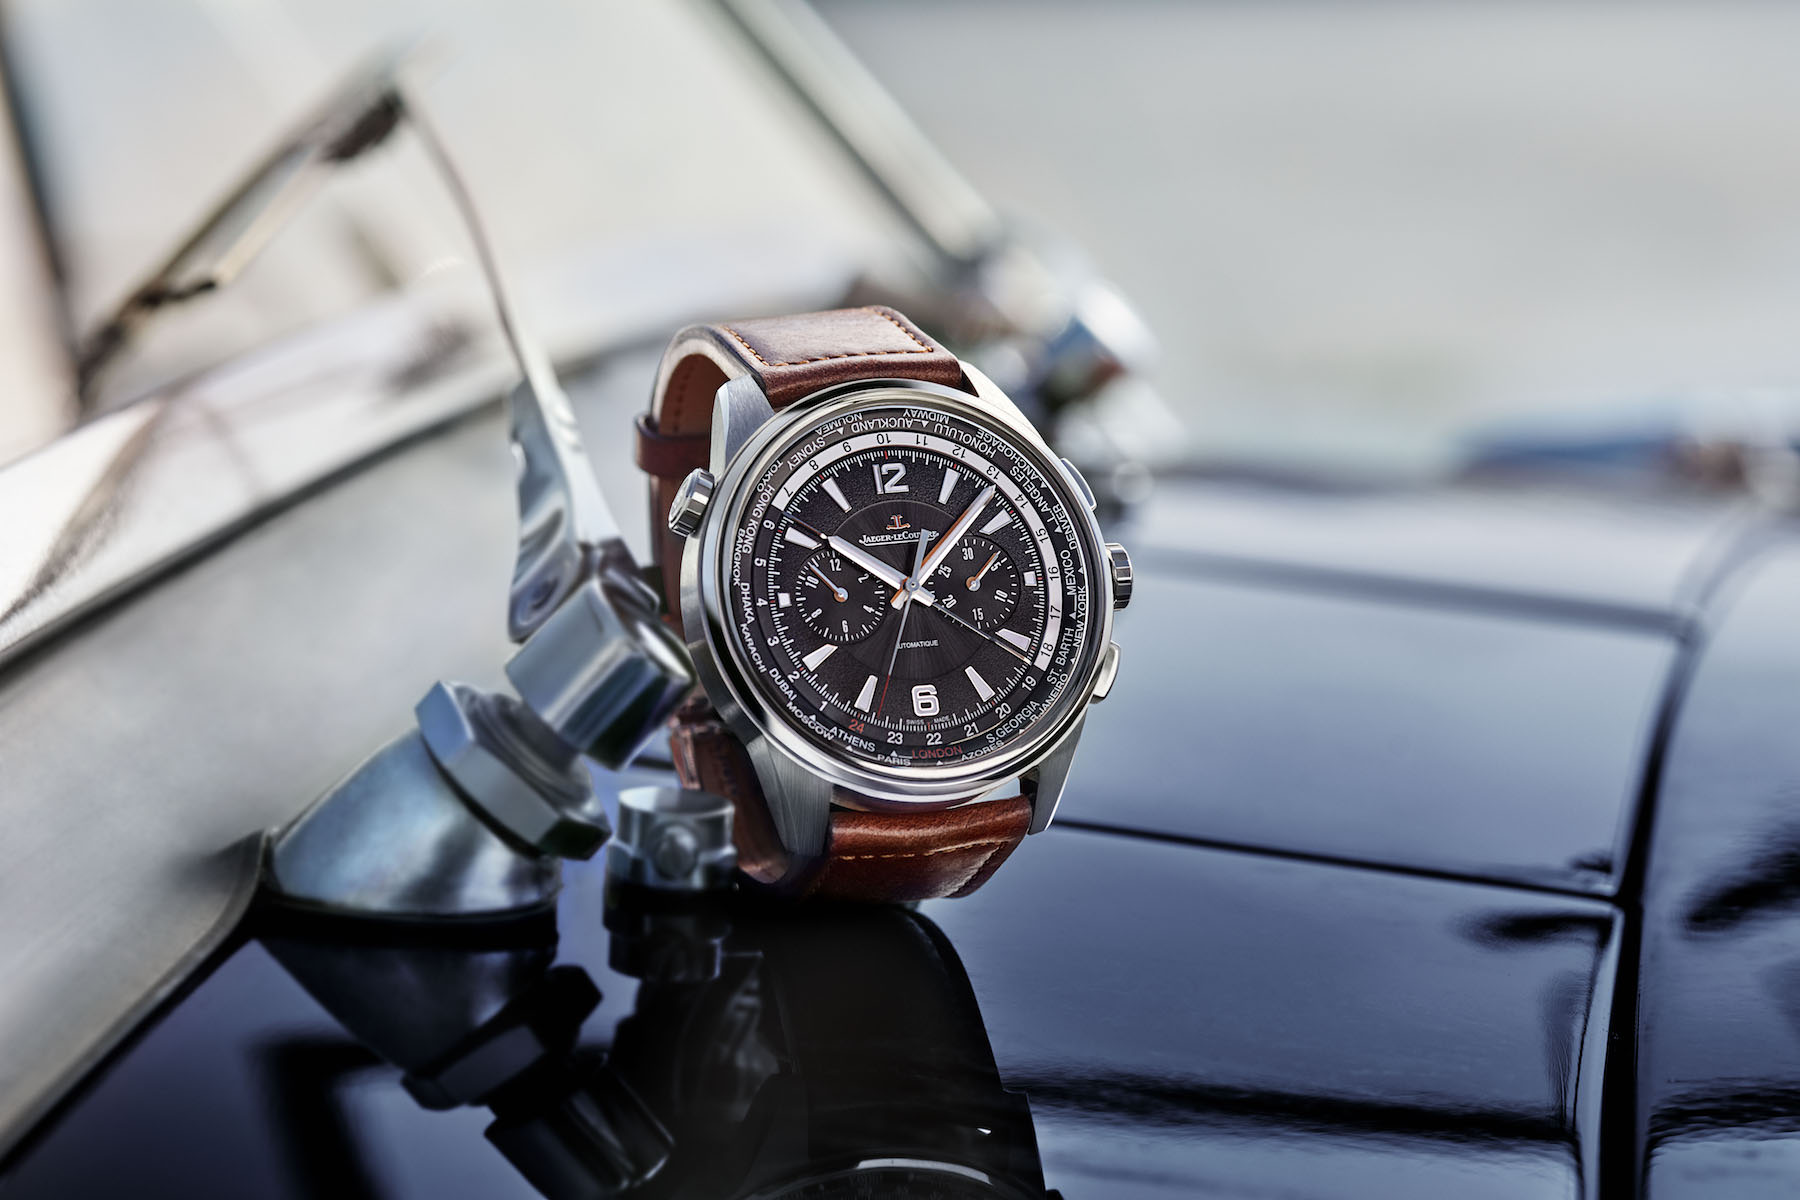 Die neue Jaeger-LeCoultre Polaris Chronograph World Time